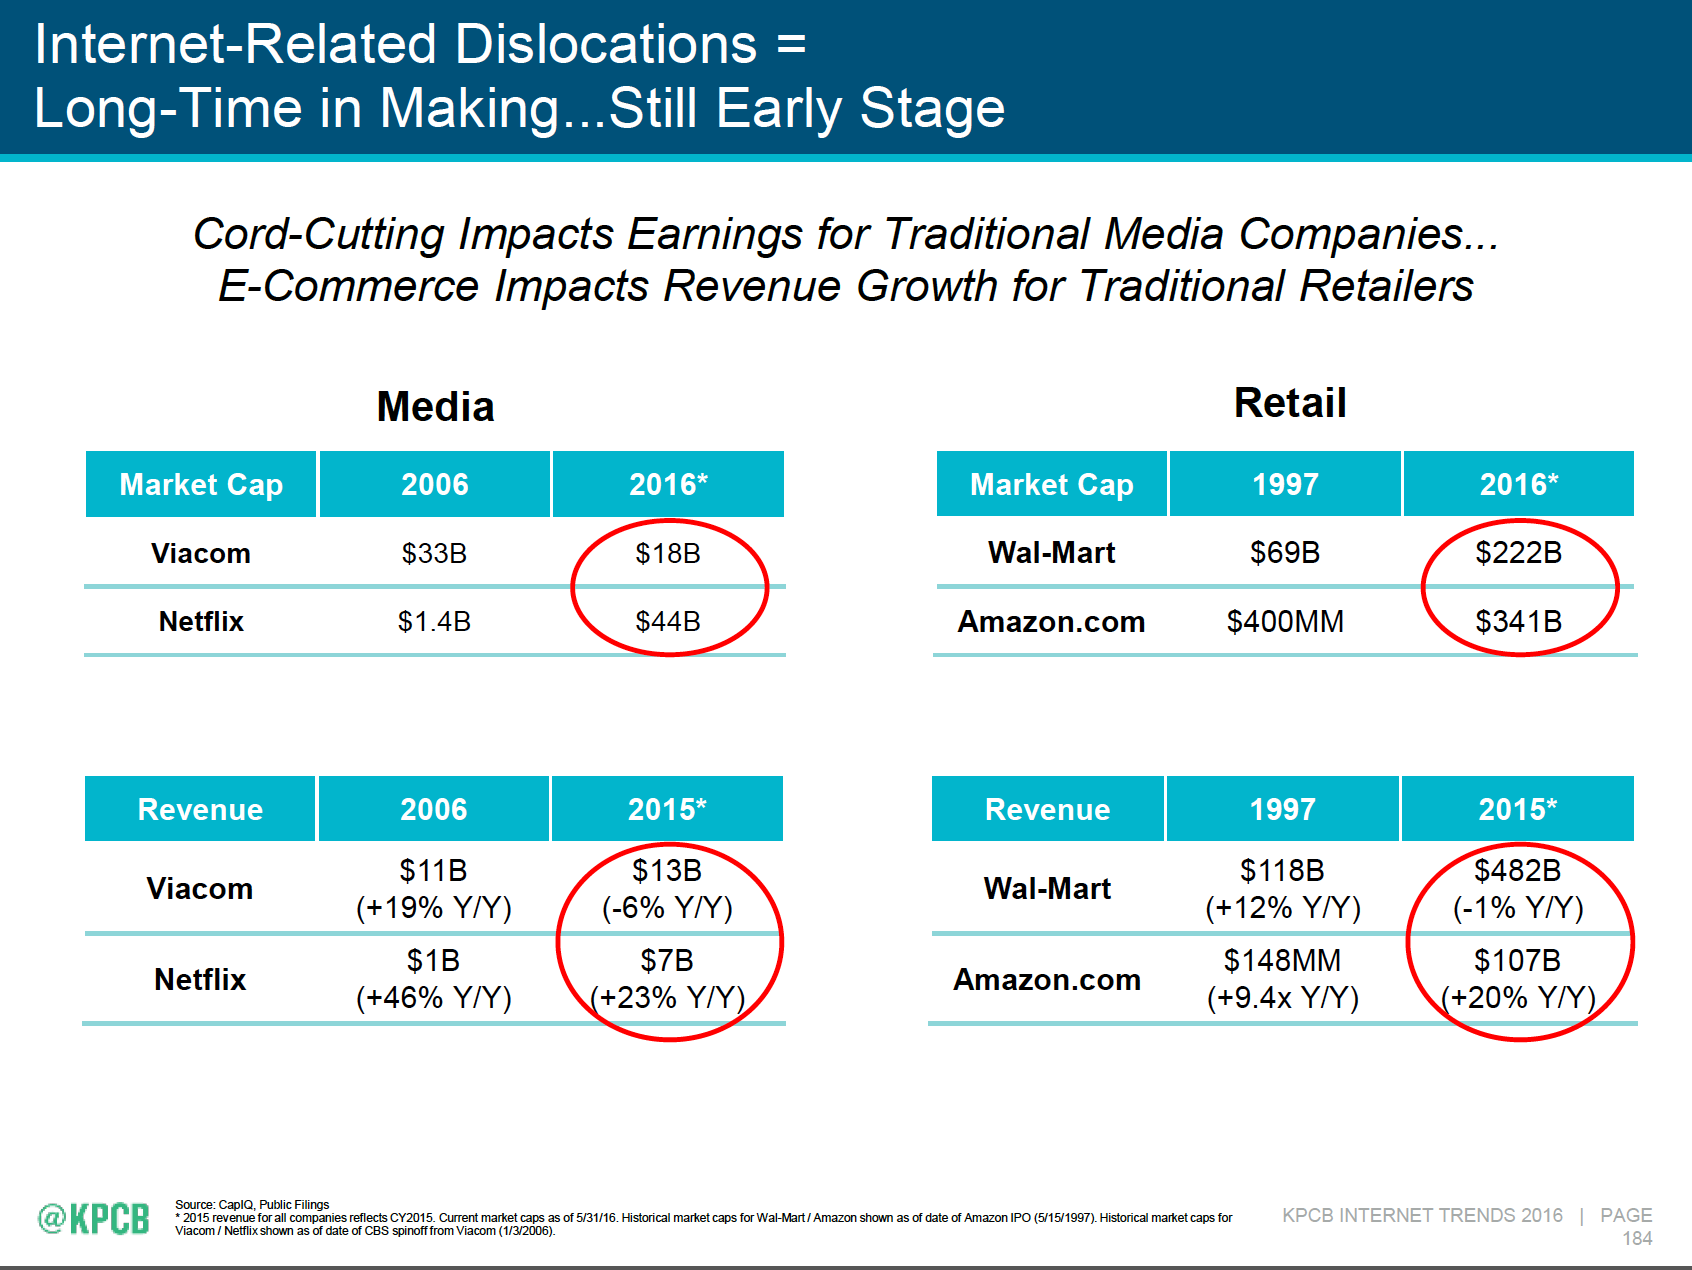 """Established brands get impacted by """"Internet-related dislocations."""" - Mary Meeker's 2016 Internet Trends Report"""